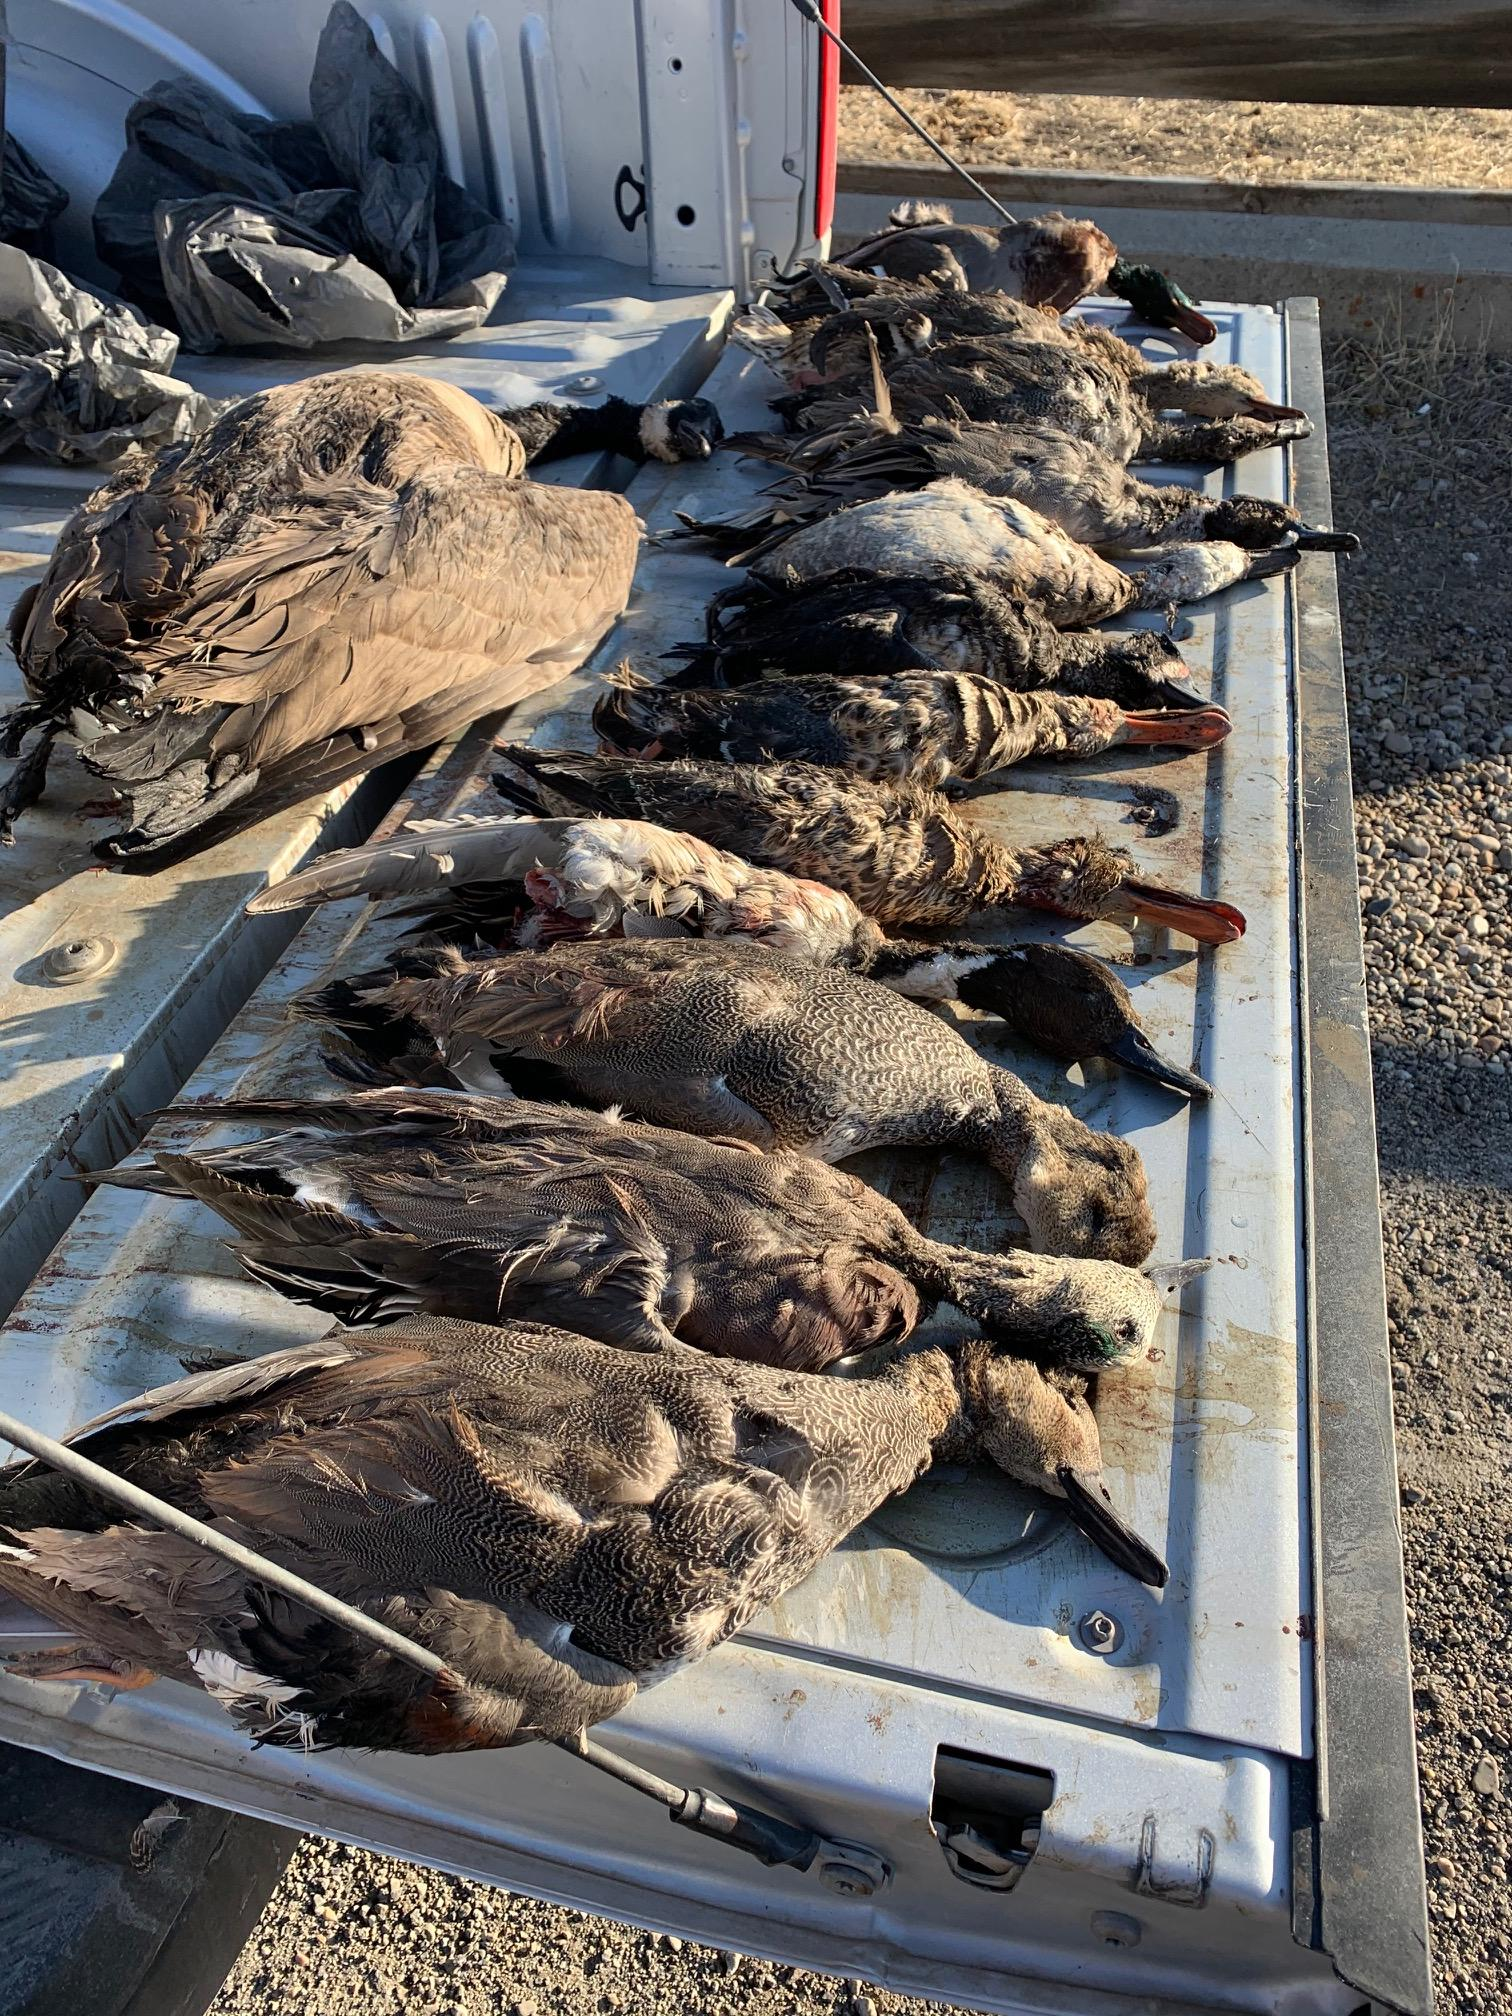 <p>More than 1,000 wildlife were illegally killed in the state of Utah during 2020, the Utah Division of Wildlife Resources reports. (Photo: DWR){&nbsp;}</p>